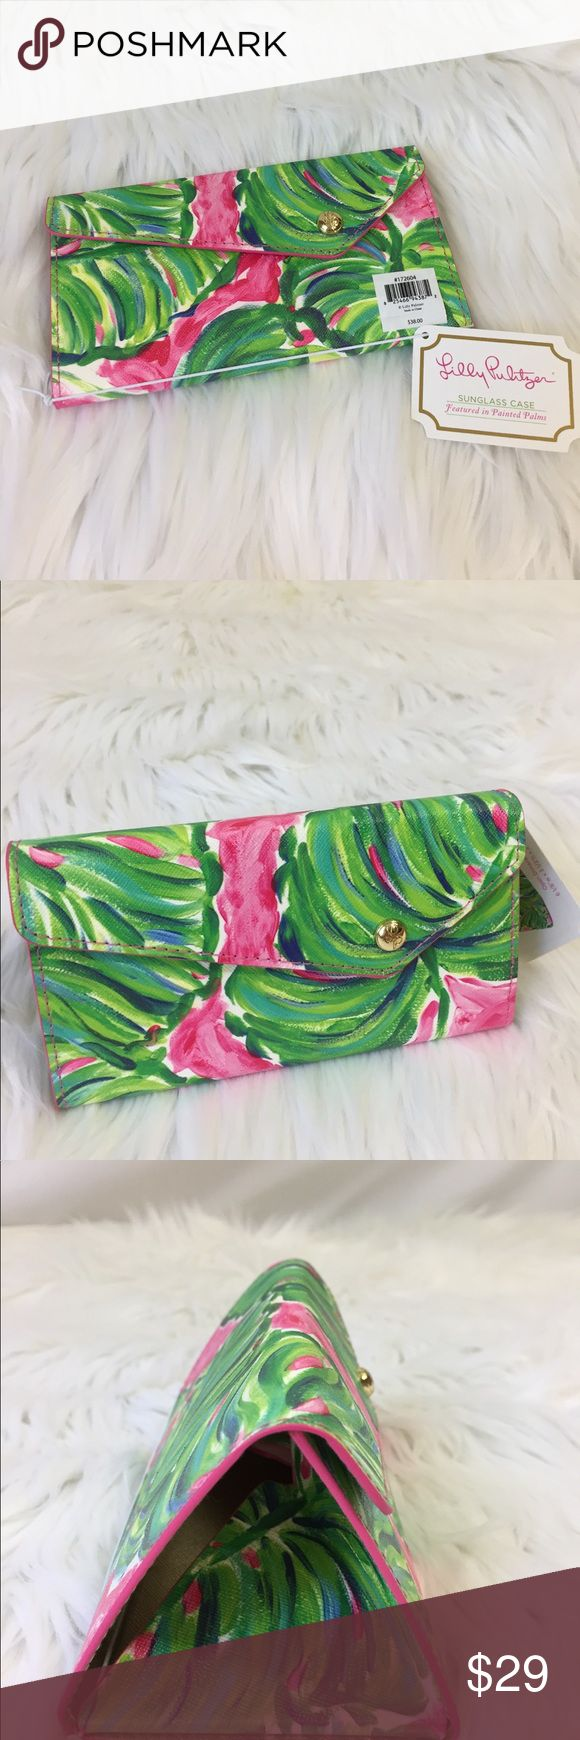 """Lilly Pulitzer painted palms sunglasses case NWT Lily Pulitzer sunglasses or glasses case in painted palms. Clever design folds flat while wearing sunglasses, expands to hold them. Gold interior with positive quote """"it's always sunny somewhere"""". Measurements in photos. No trades. Lilly Pulitzer Accessories"""